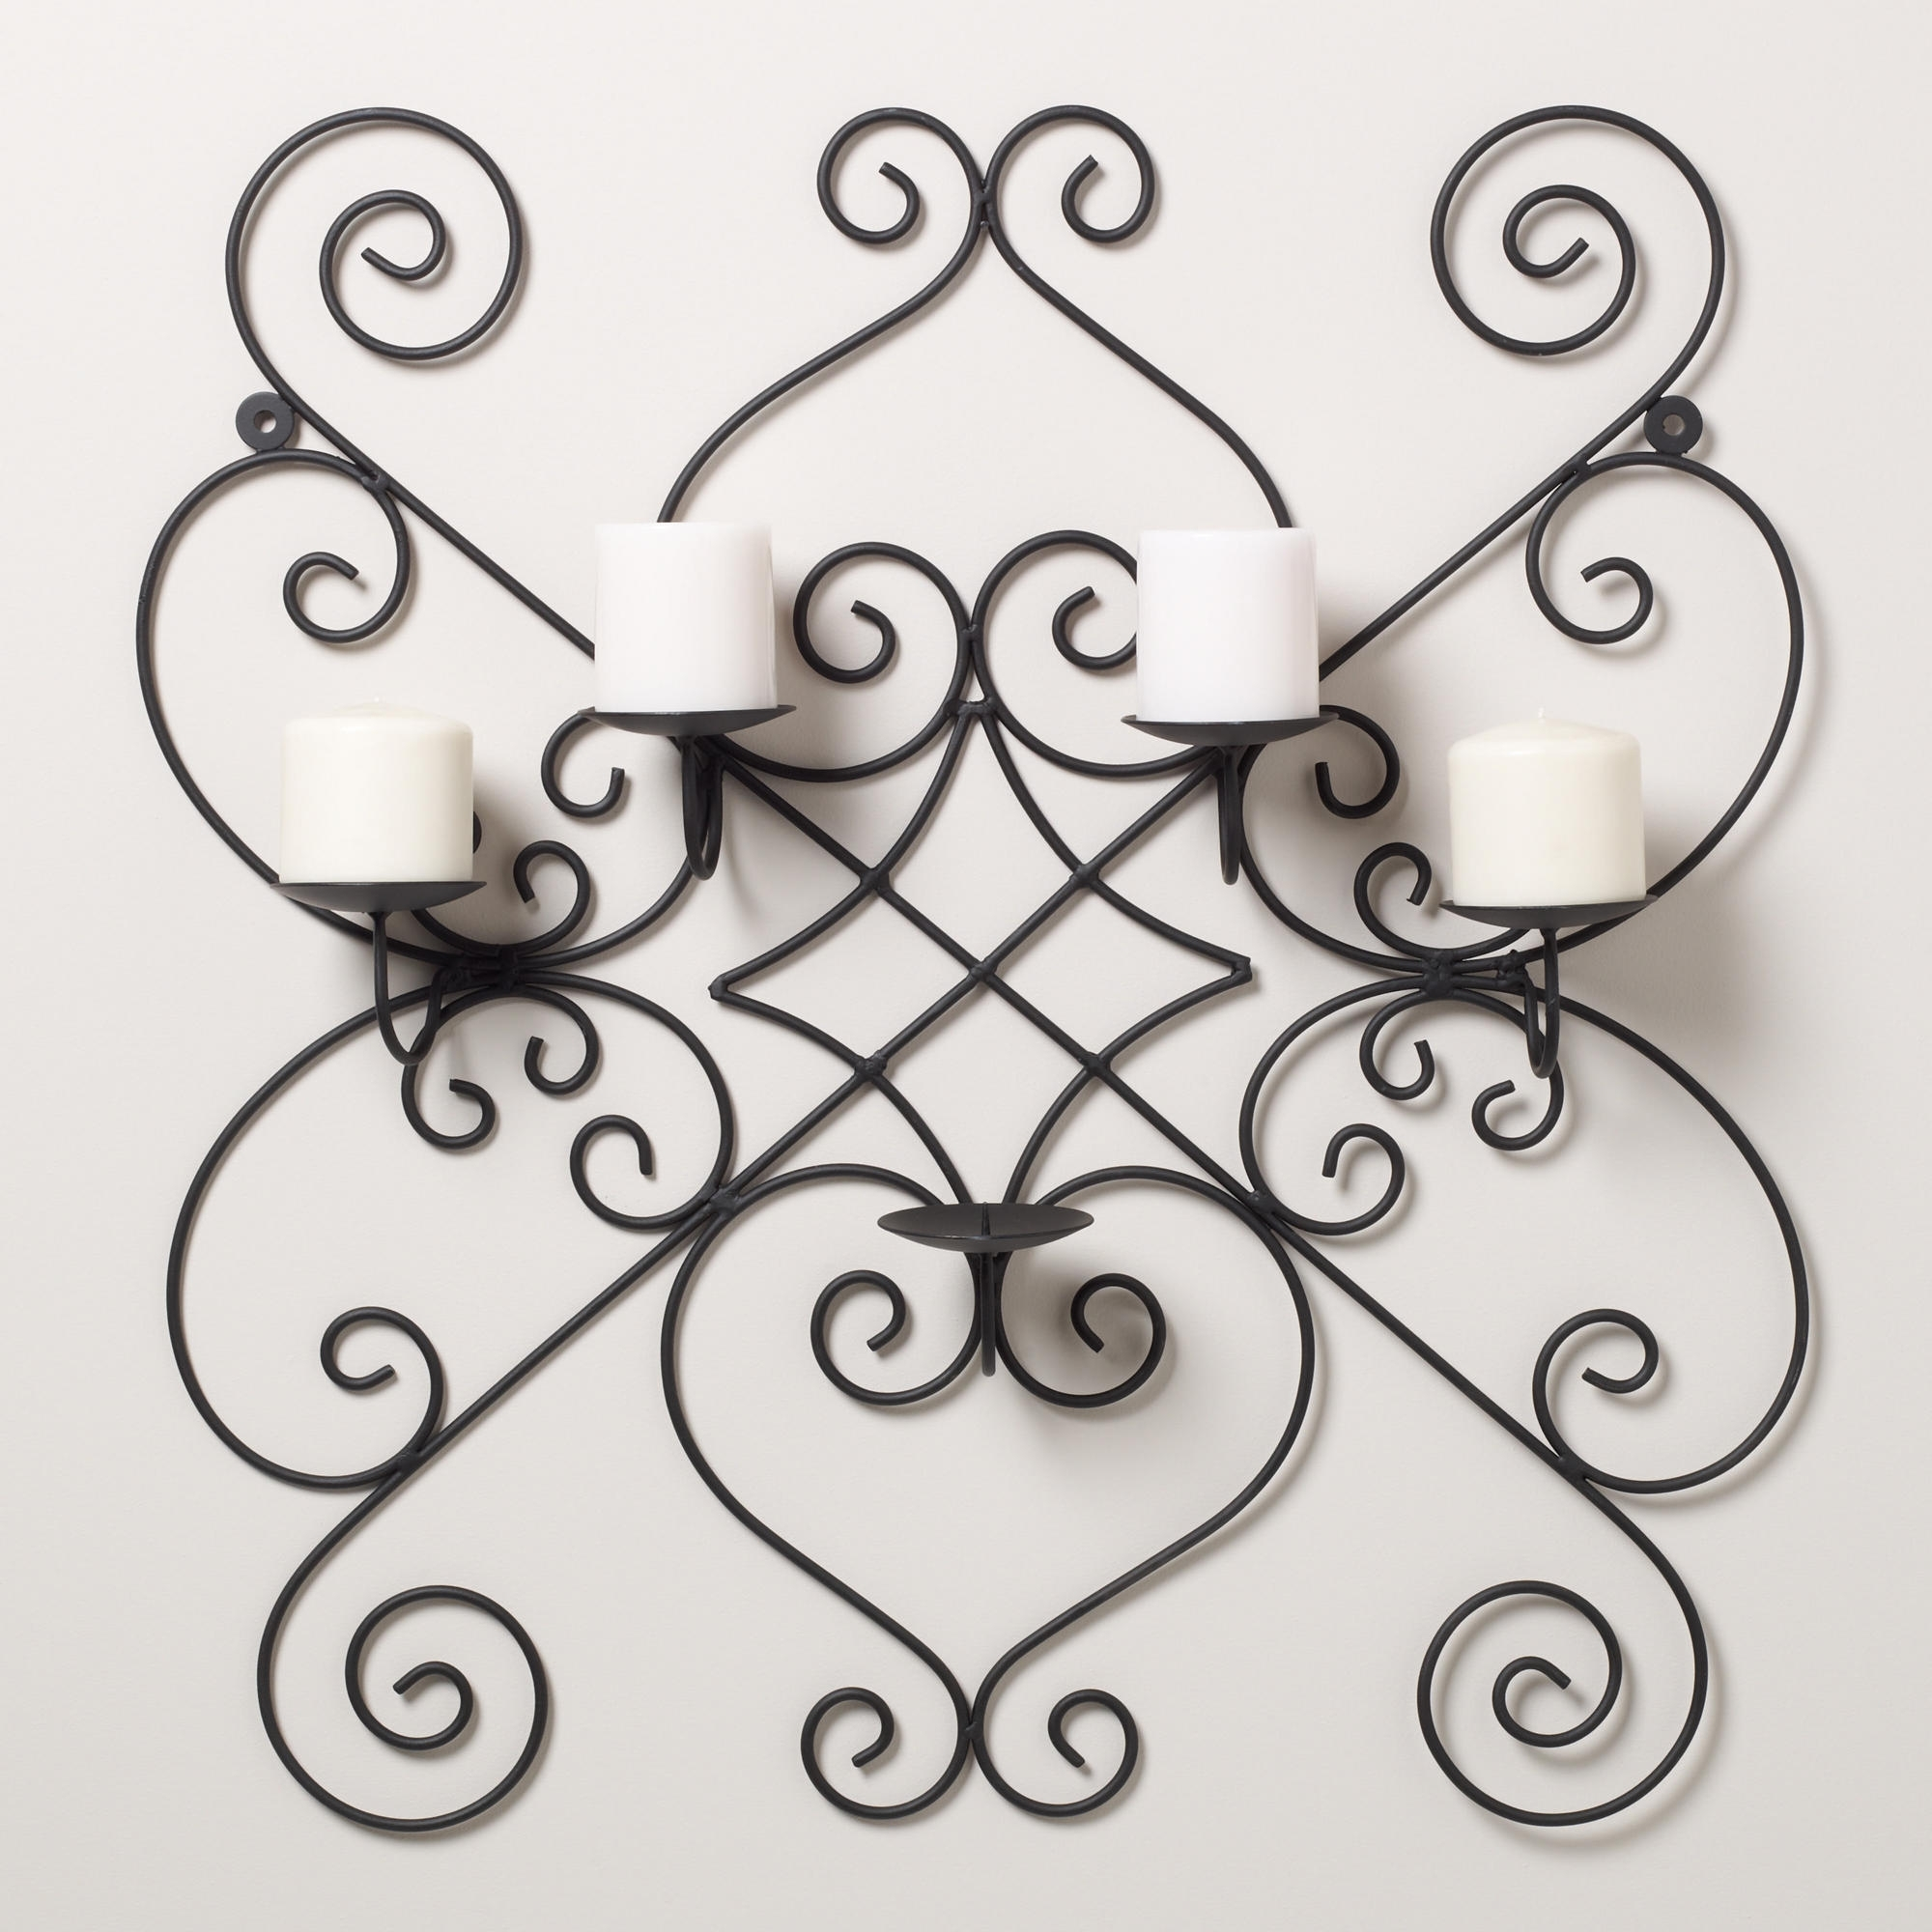 Wrought Iron Wall Art Throughout Favorite Benefit Of Wrought Iron Wall Decor — Charter Home Ideas (View 14 of 15)